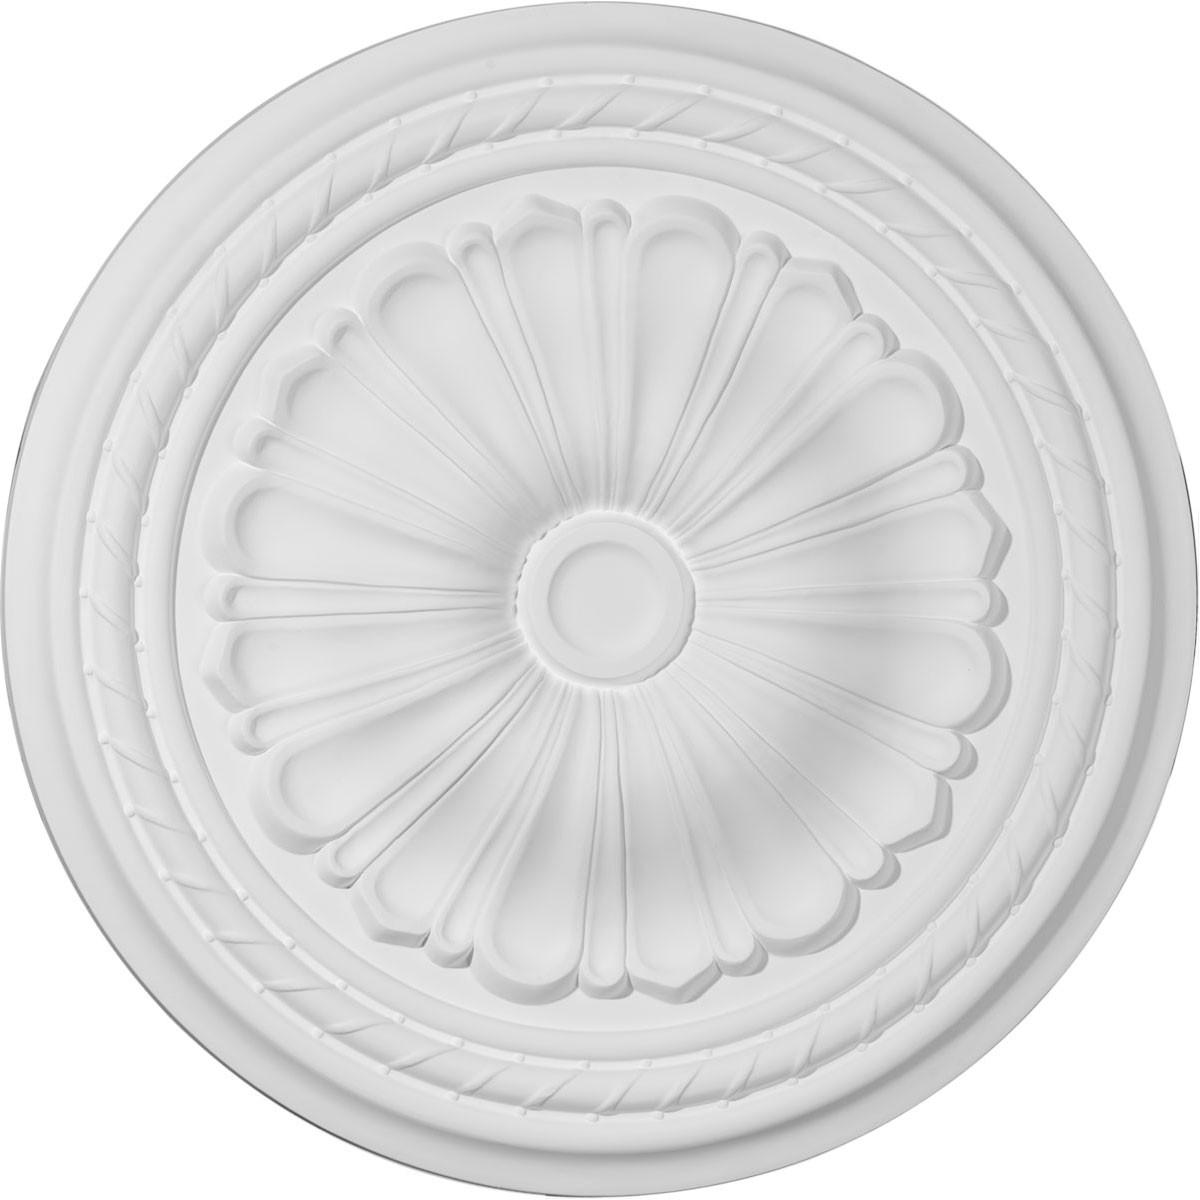 "EM-CM20AL - 20 1/2""OD x 1 7/8""P Alexa Ceiling Medallion (Fits Canopies up to 2 7/8"")"